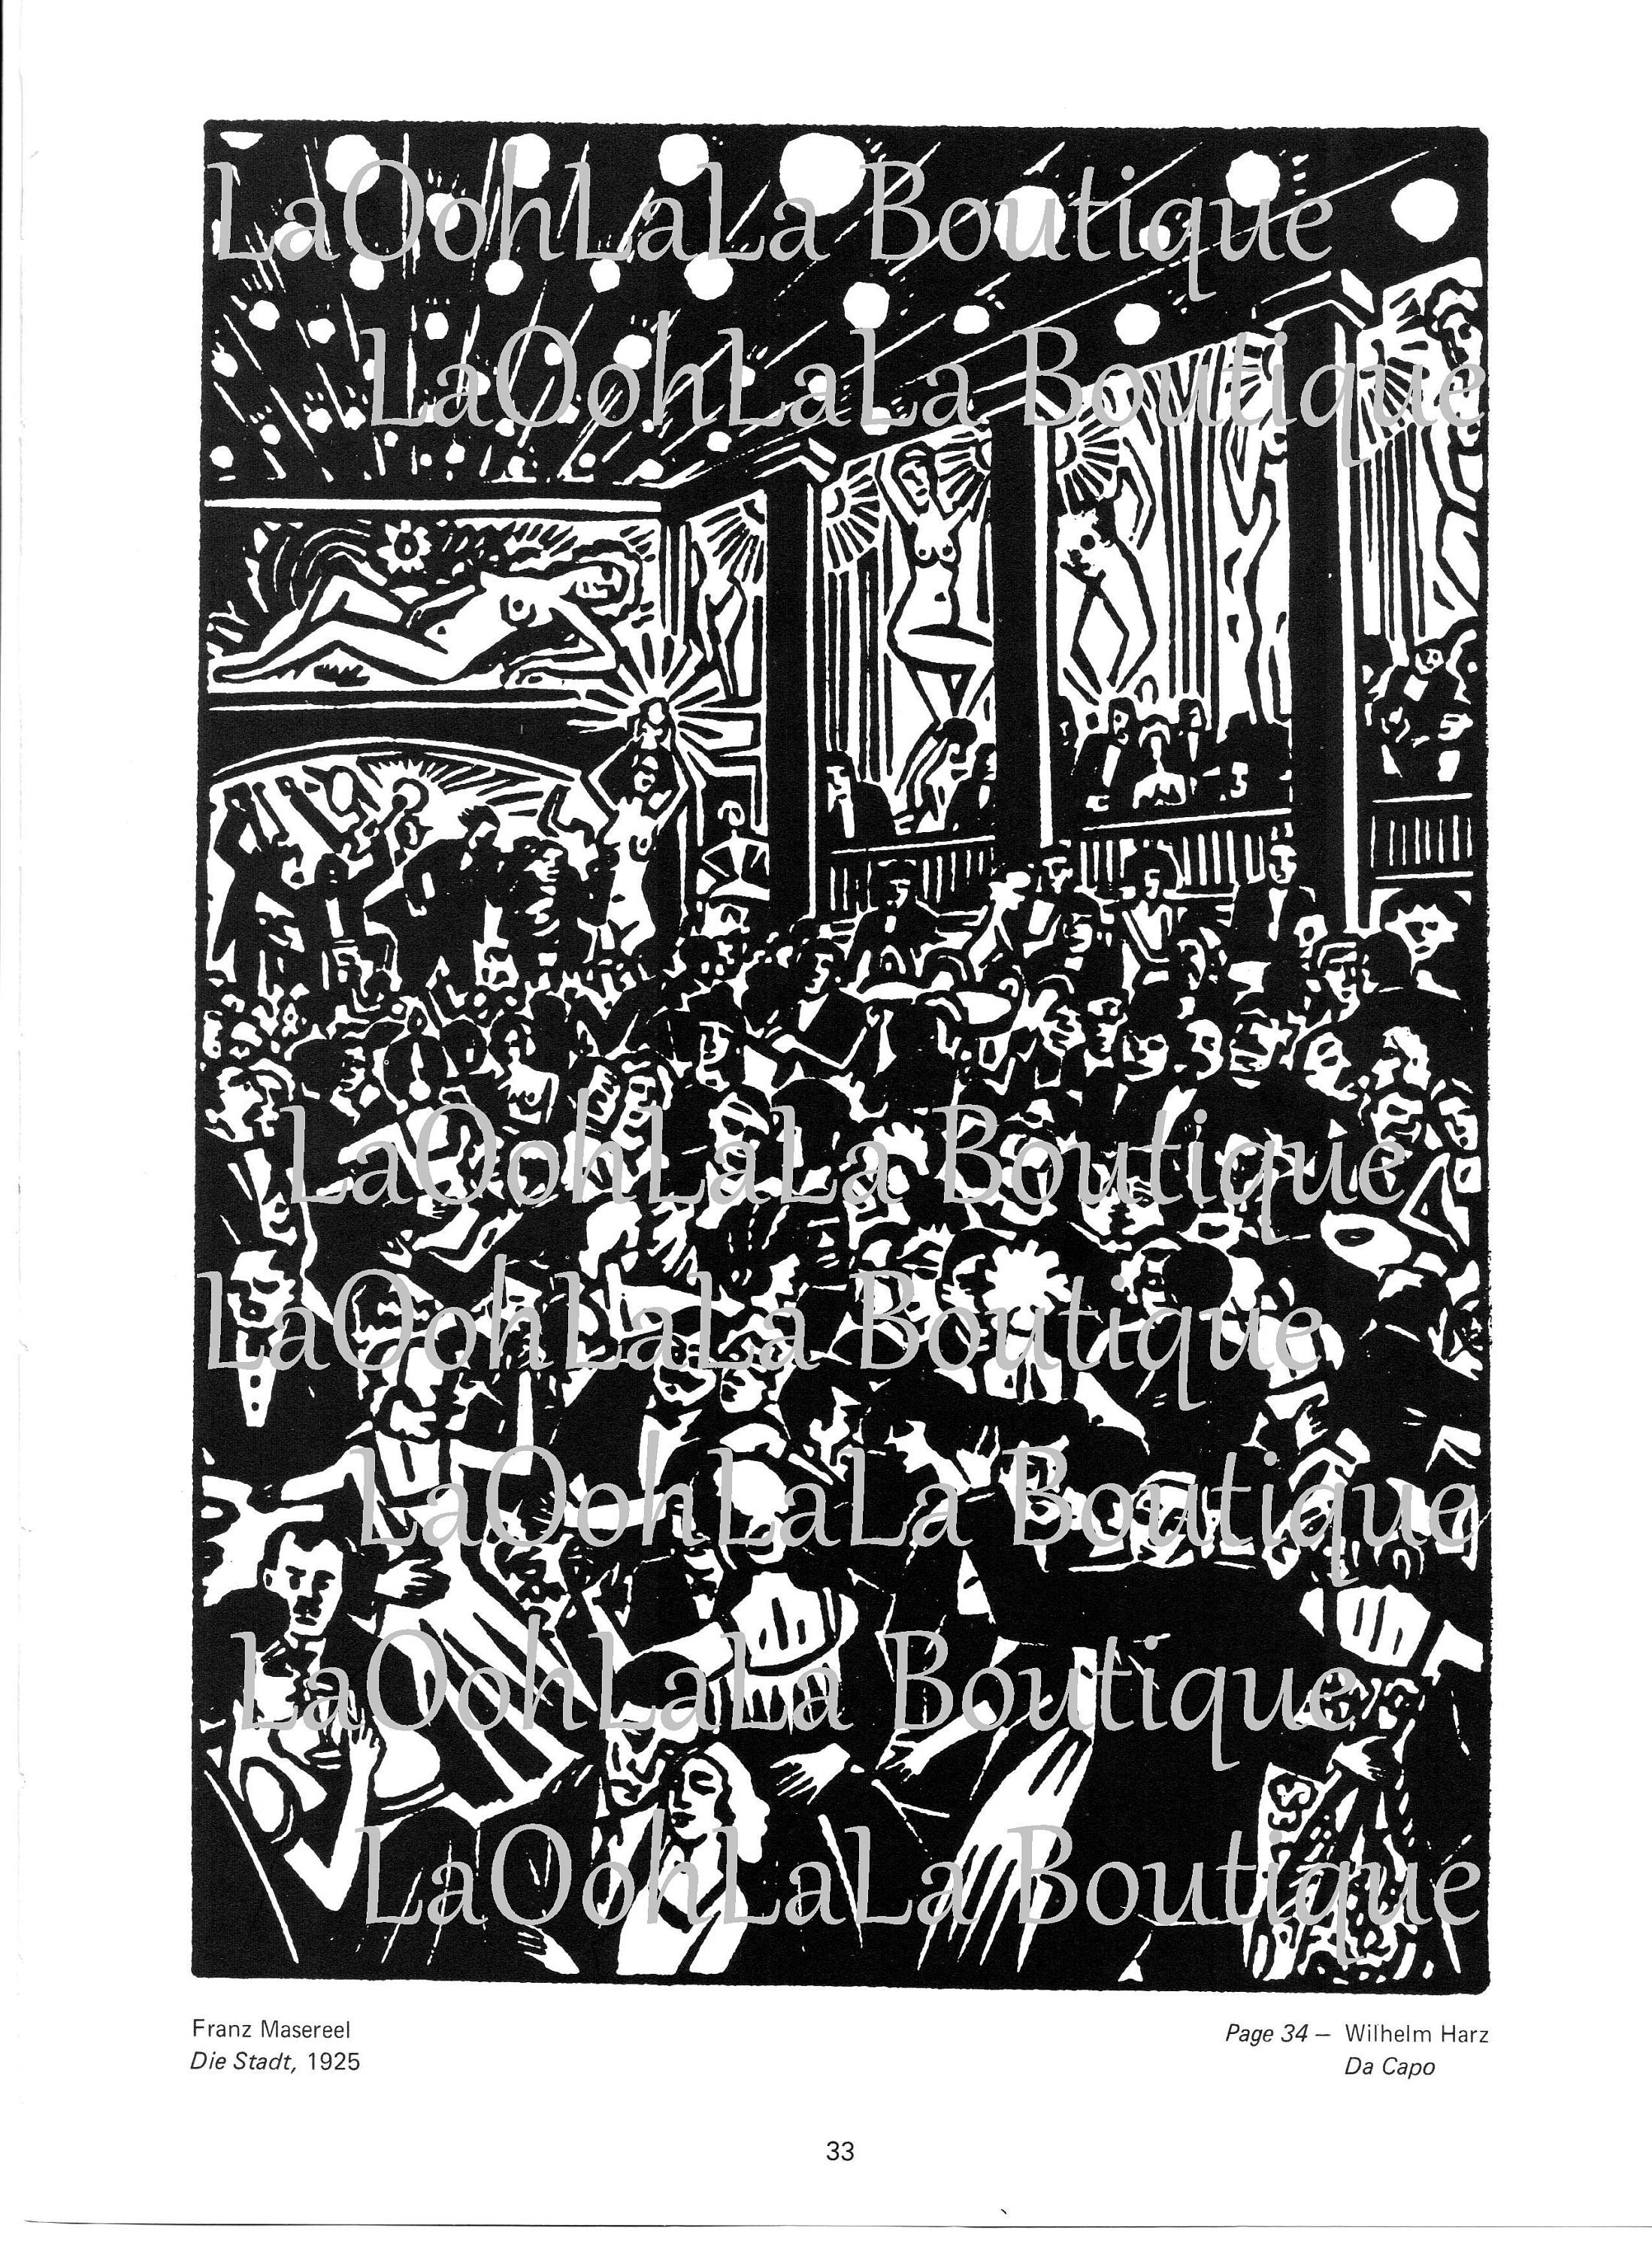 1925 City Erotica /& New Year/'s Eve Jazz Vintage Double Sided Lithograph Print Frans Masereel Black and White Woodcut Art Deco 20s Wall Decor